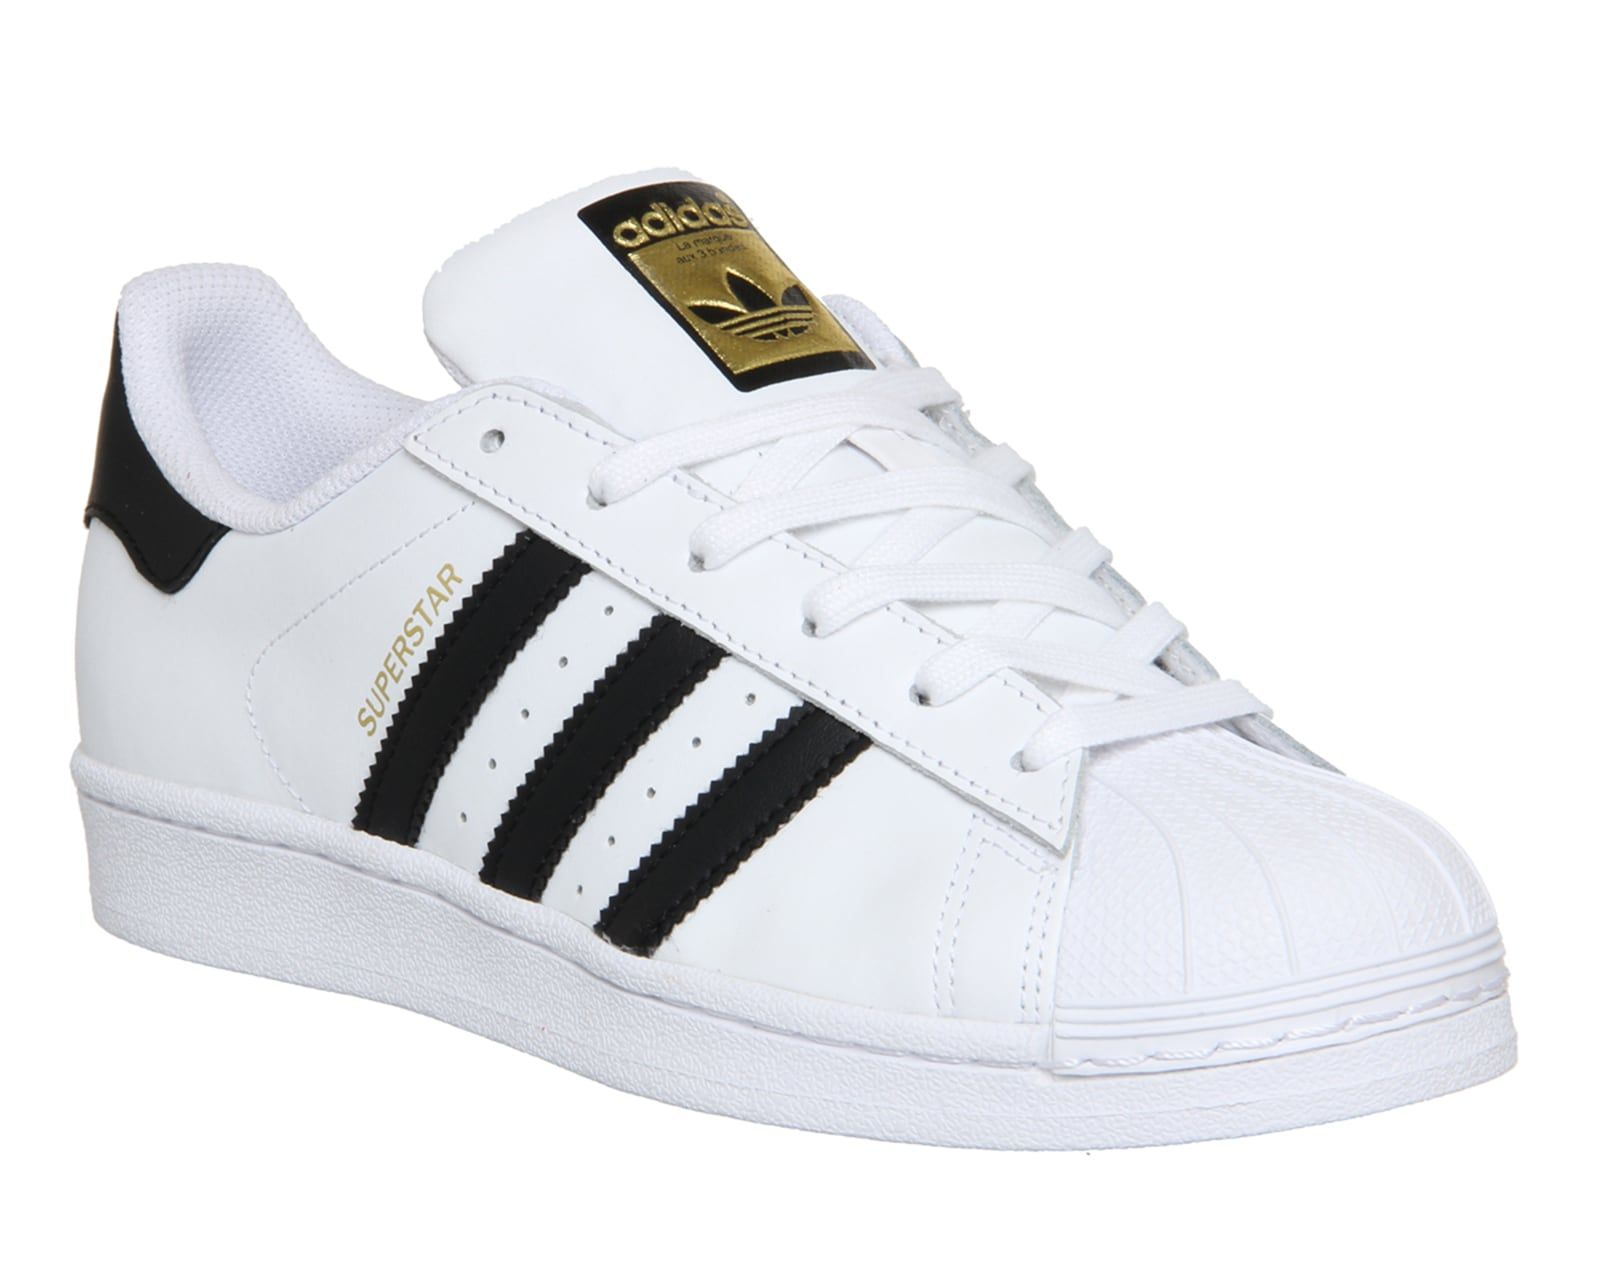 Superstar Adidas For Shoes Rose Sneakers Gold Woman Femme oWBEQrdCxe